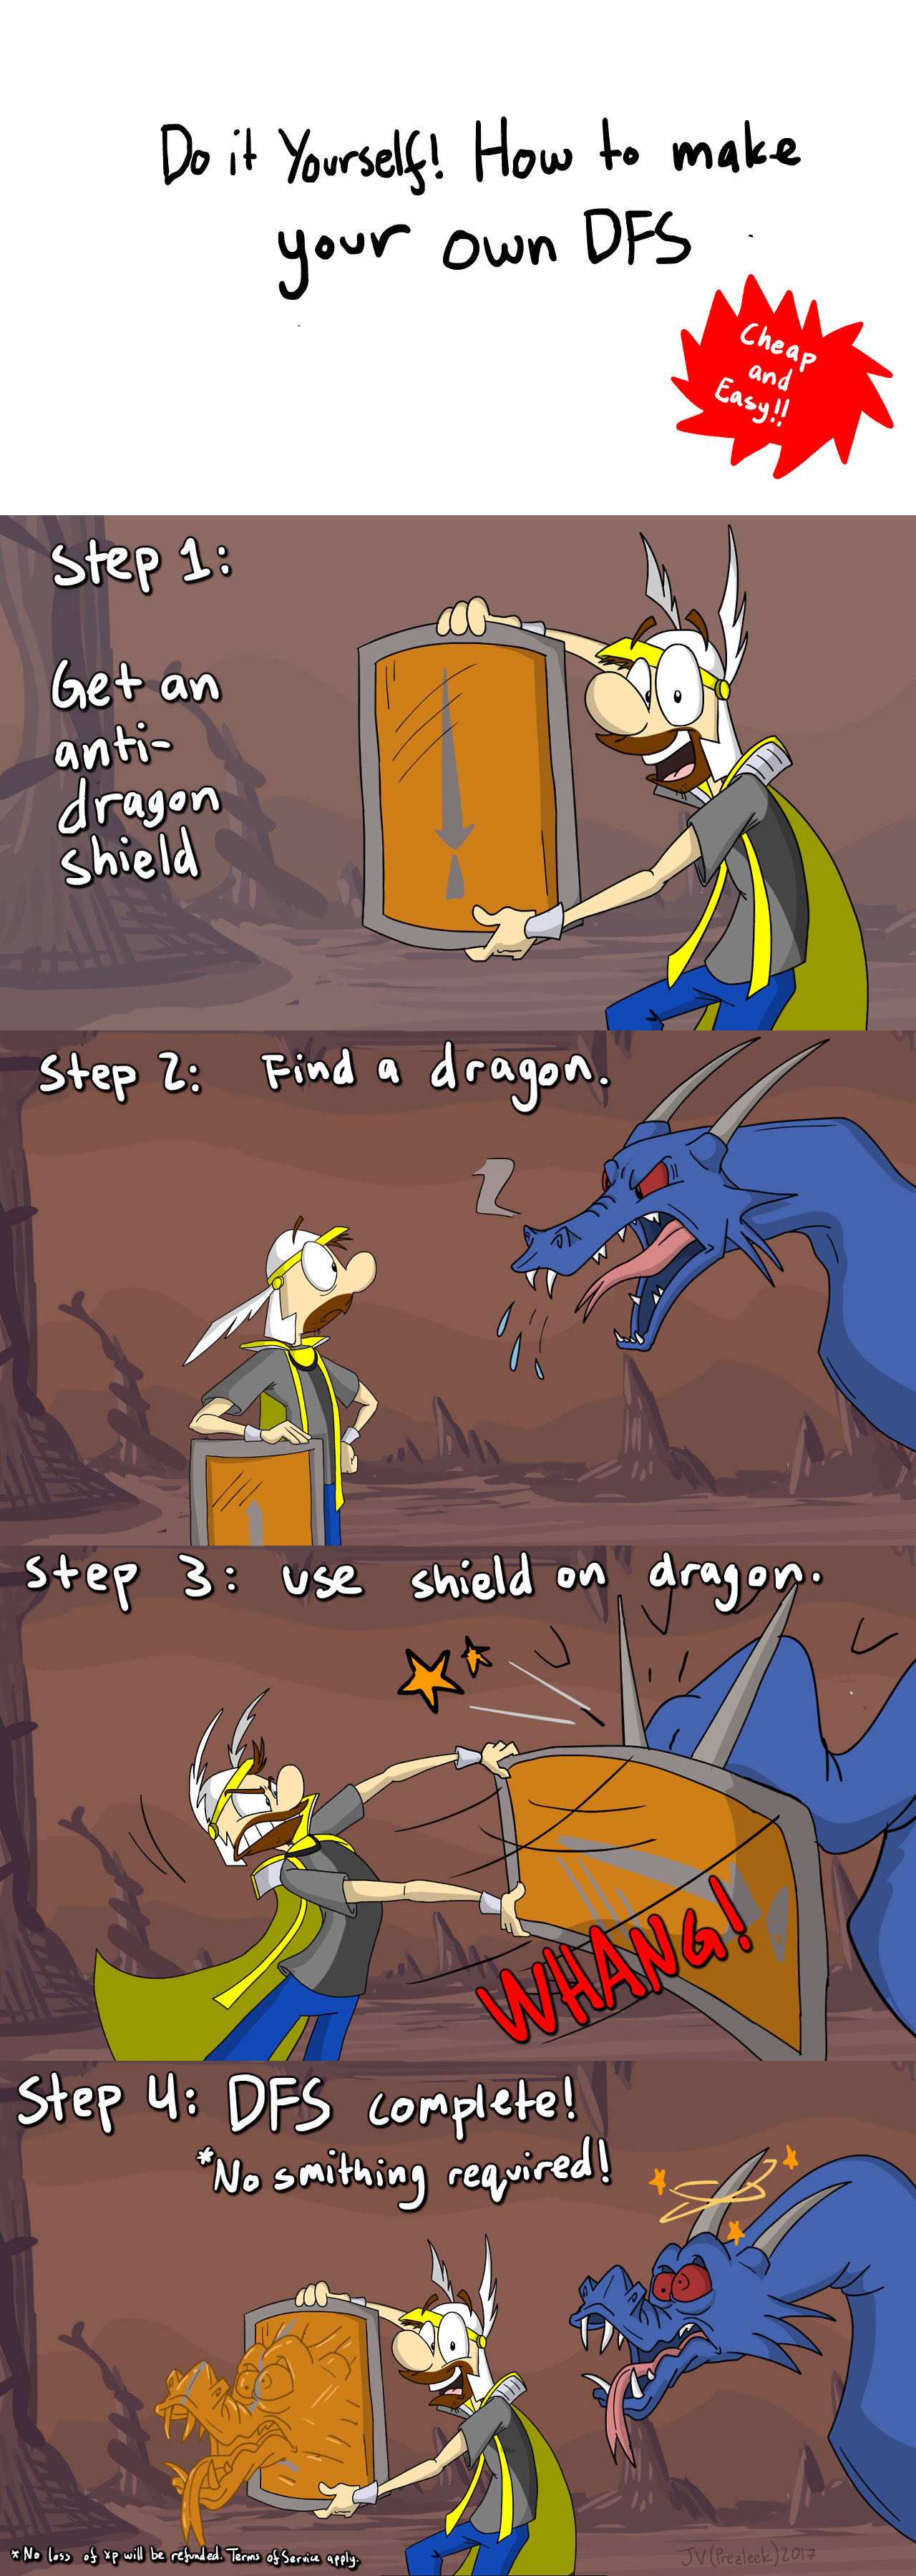 Do it yourself dragonfire shield a video games comic dueling do it yourself dragonfire shield solutioingenieria Gallery